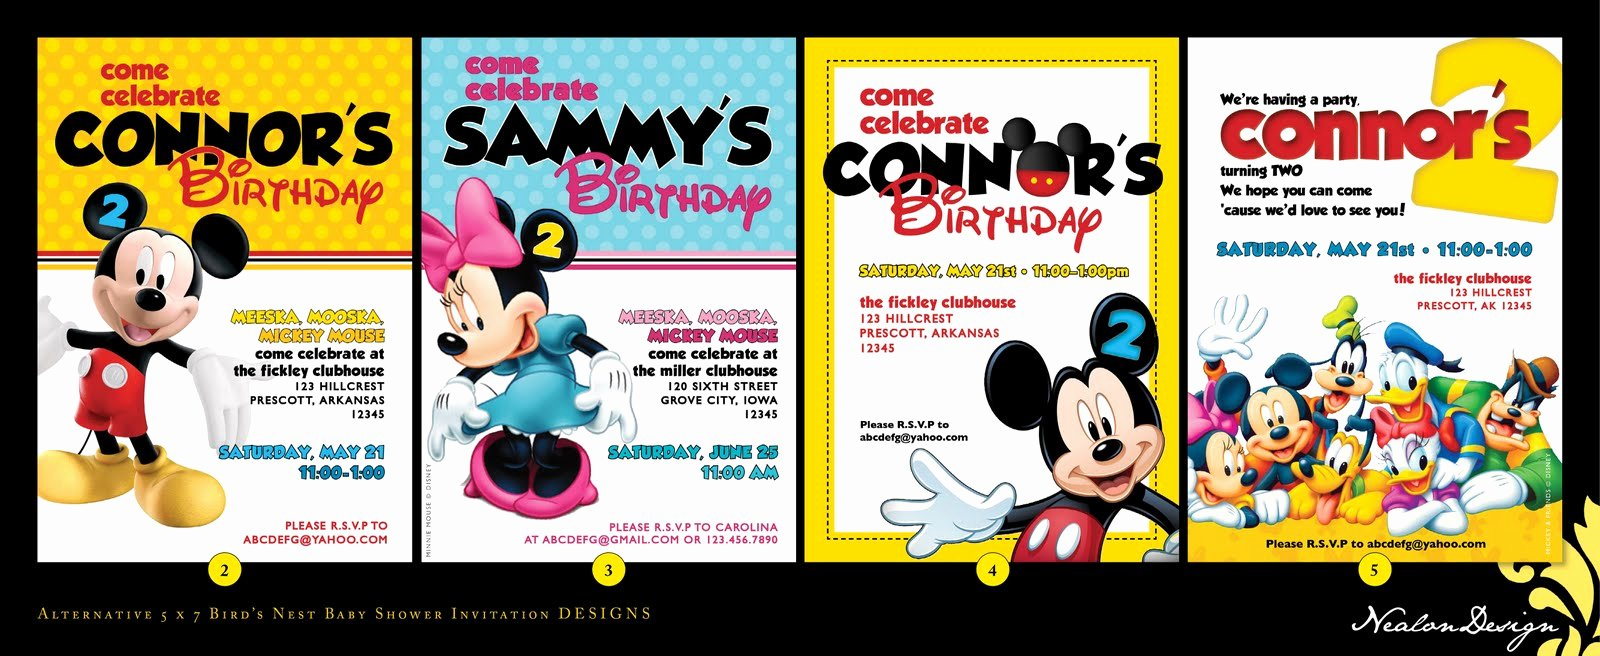 Mickey Mouse Clubhouse Birthday Invites Elegant Nealon Design Mickey Mouse Clubhouse Birthday Invitations